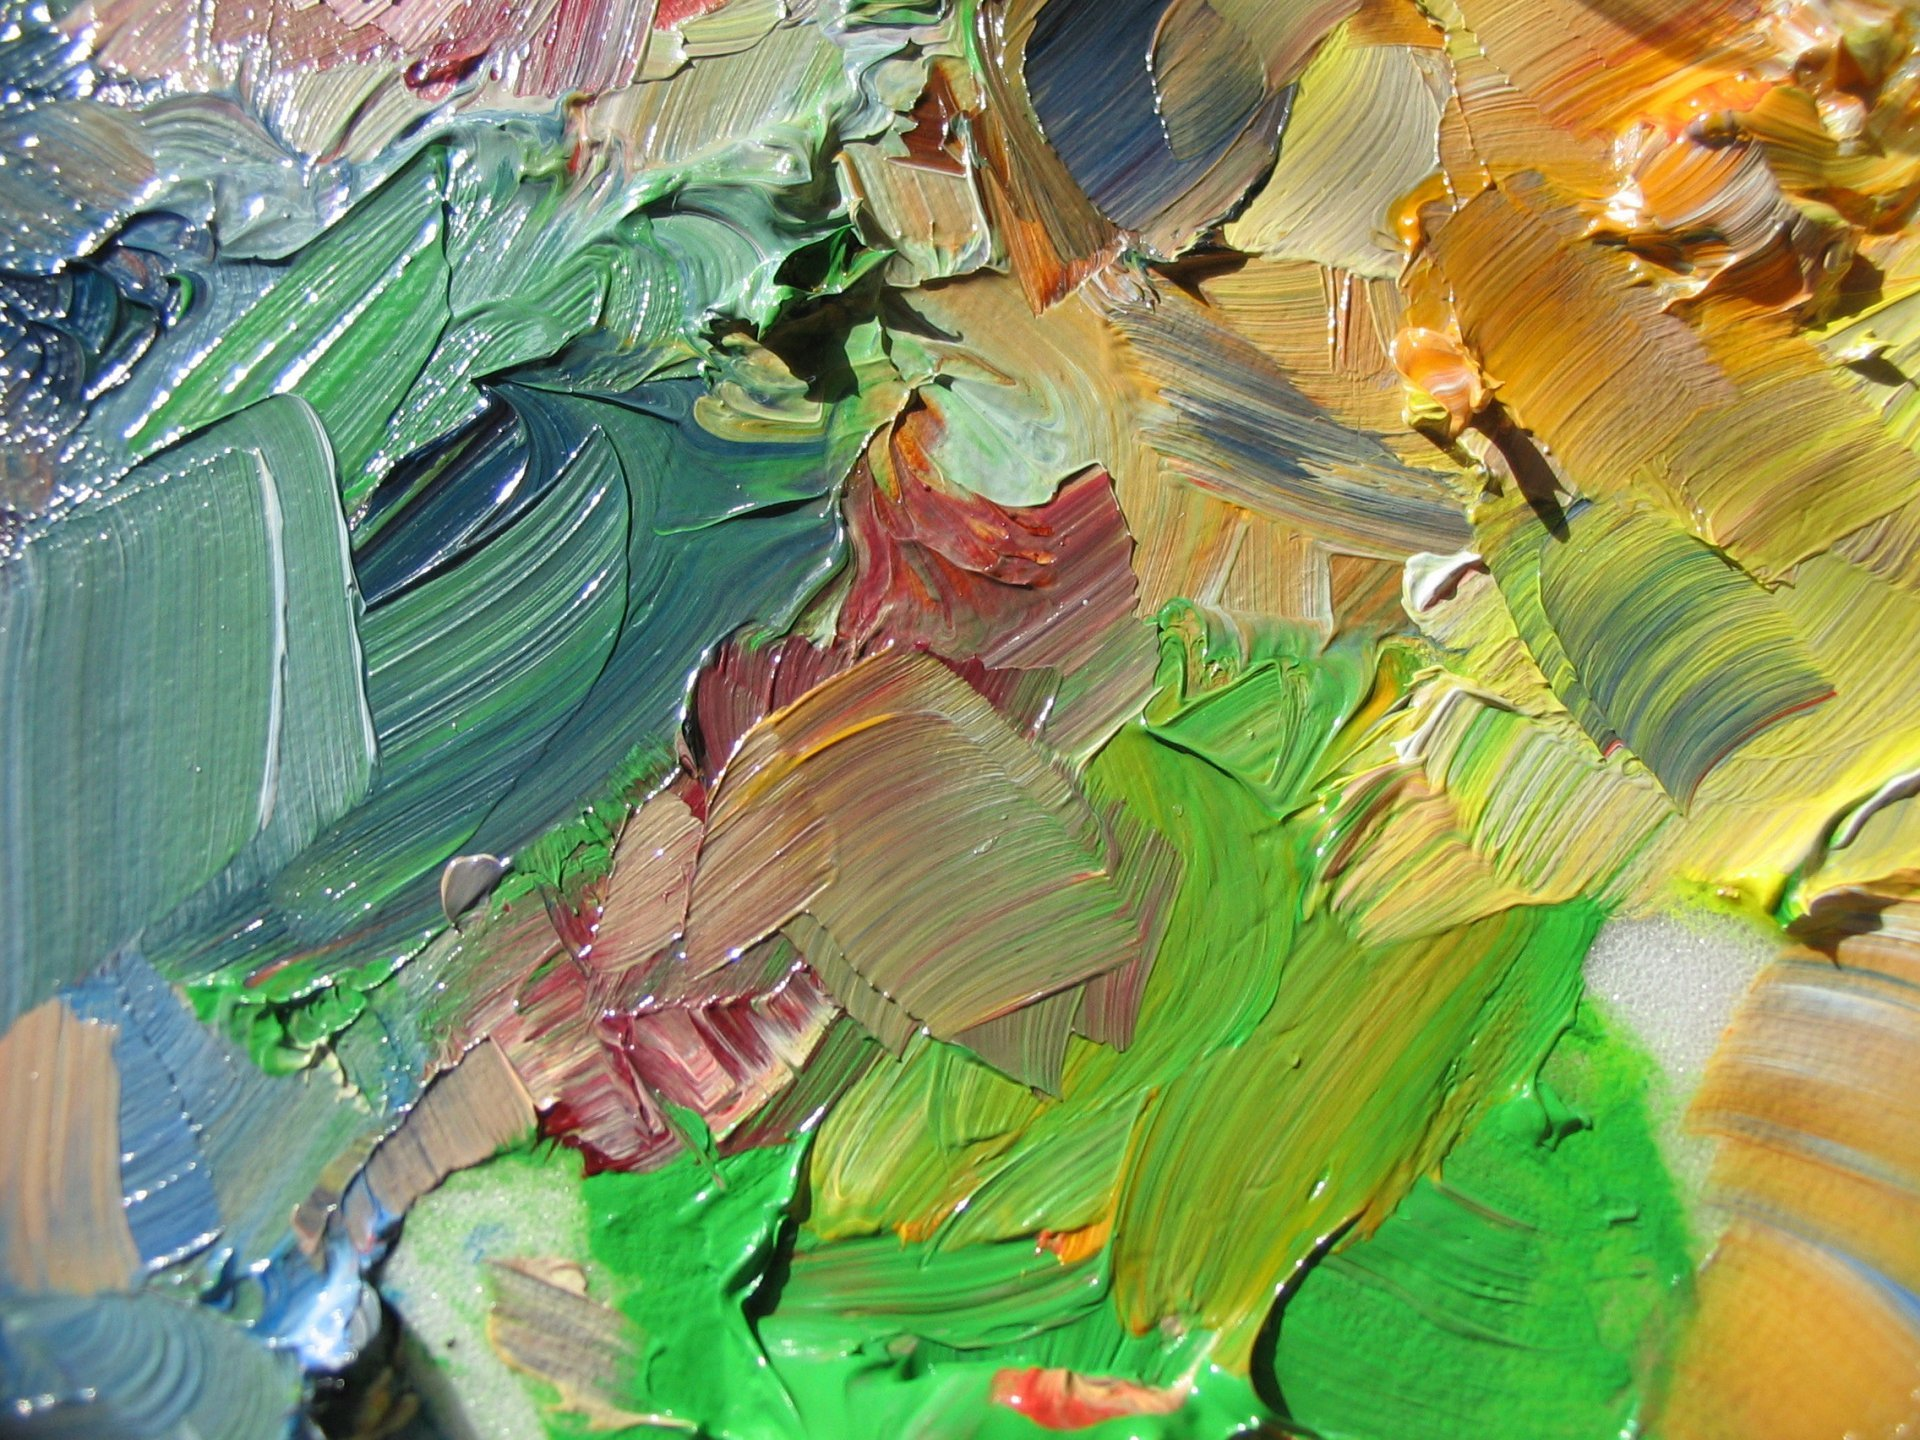 canvas paint smears abstract HD wallpaper